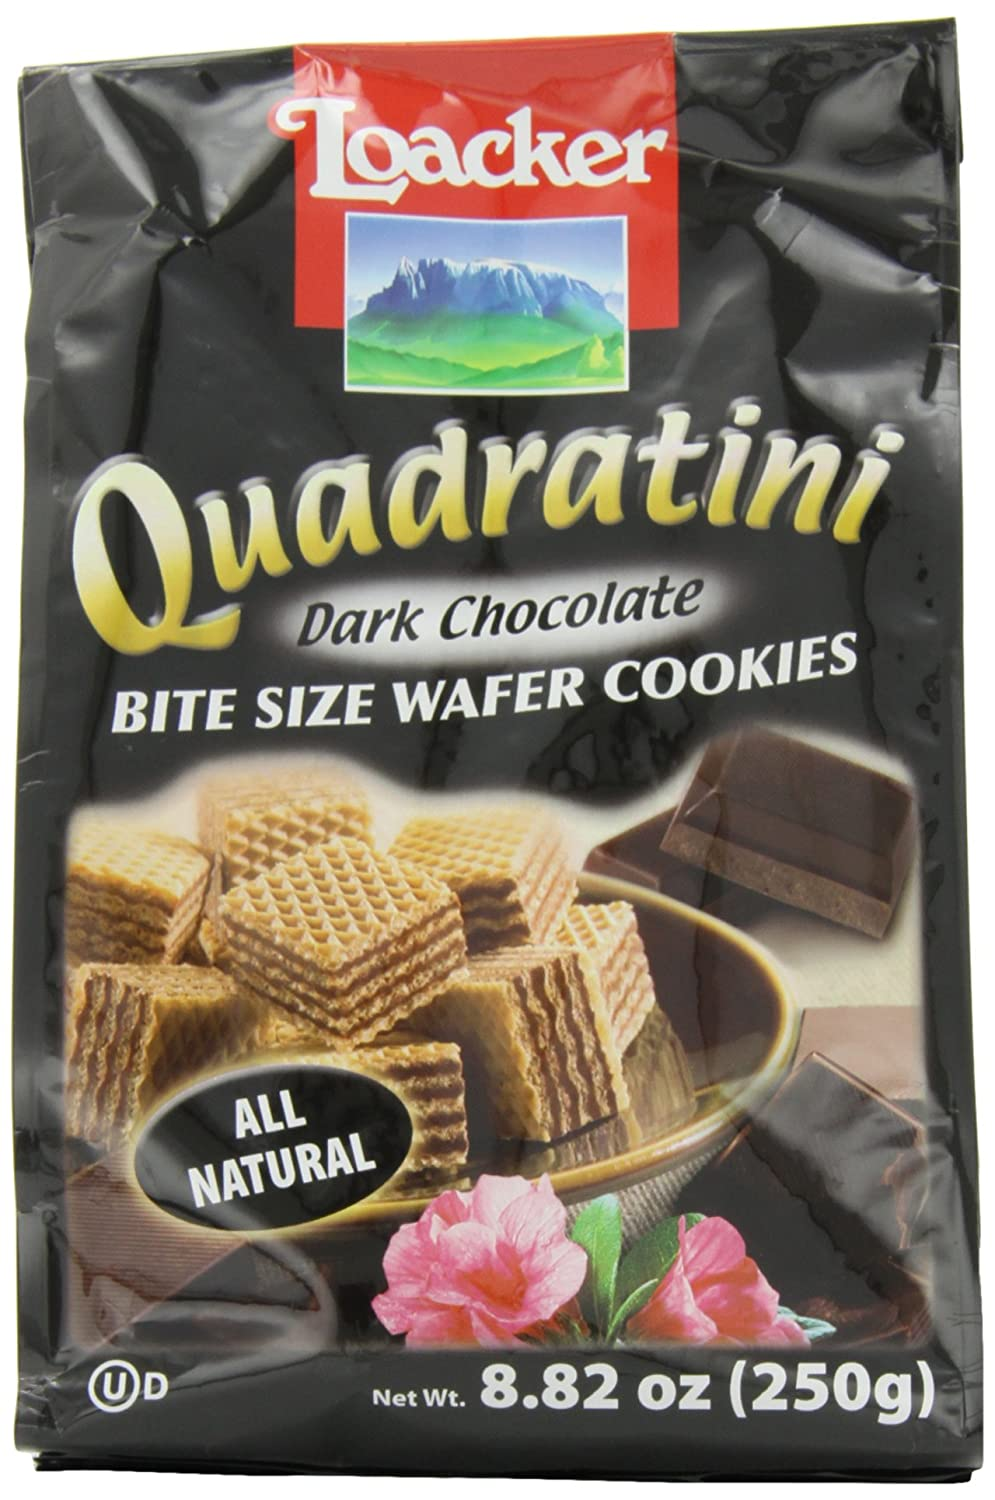 Loacker Quadratini, Bite Size Wafer Cookies, Dark Chocolate, 8.82 ...